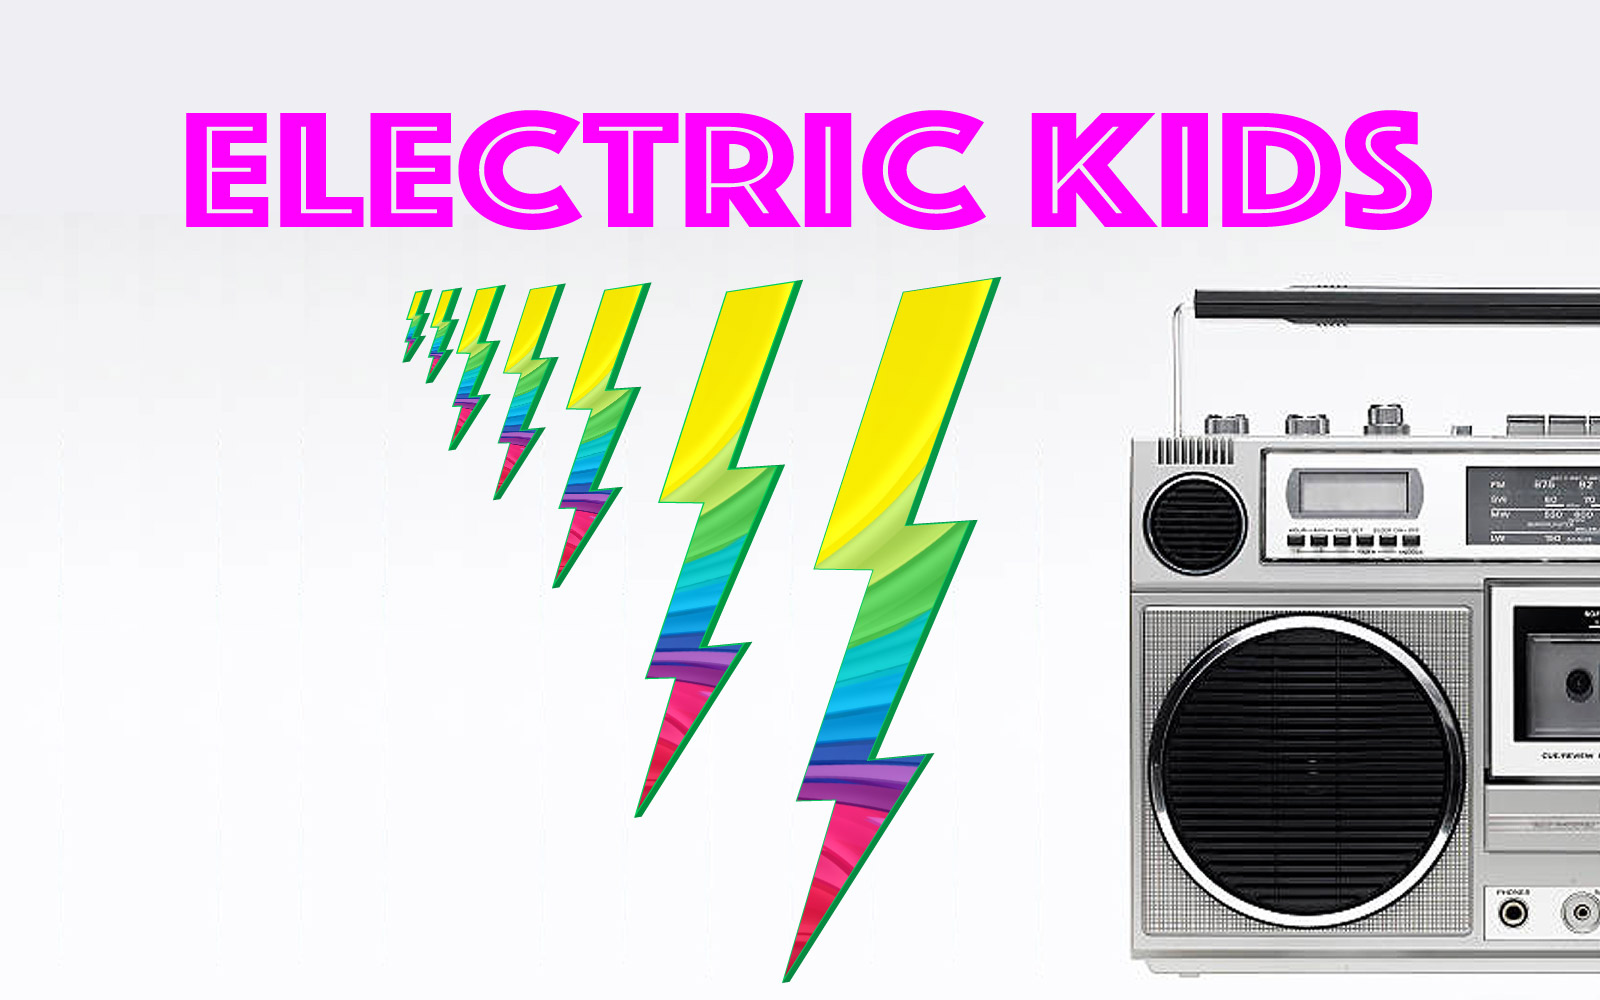 ELECTRIC-KIDS